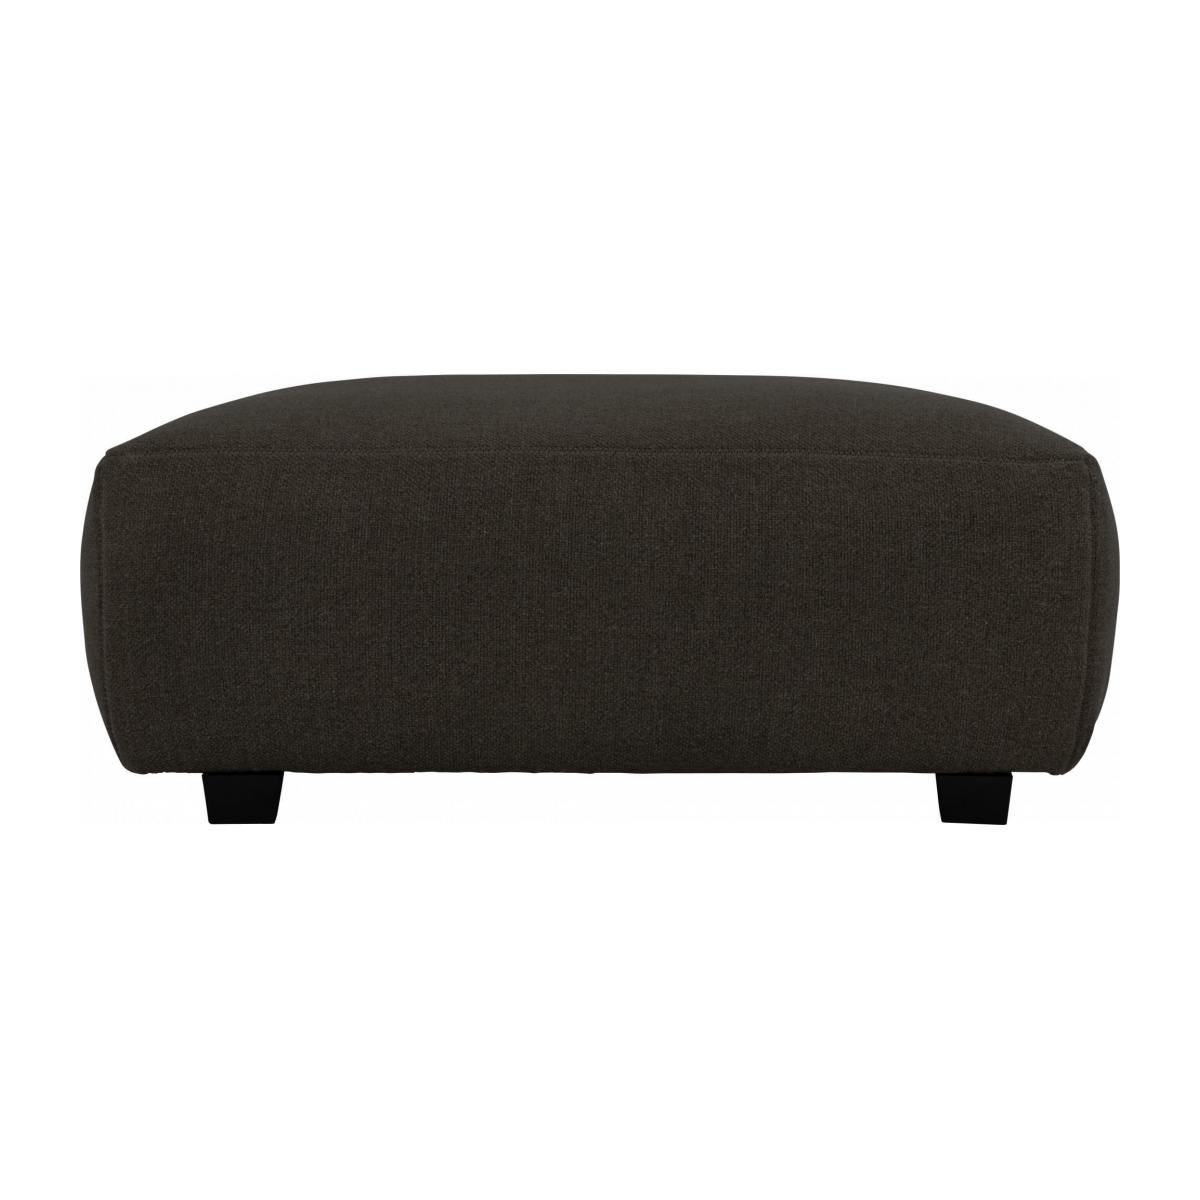 Footstool in Lecce fabric, muscat n°1